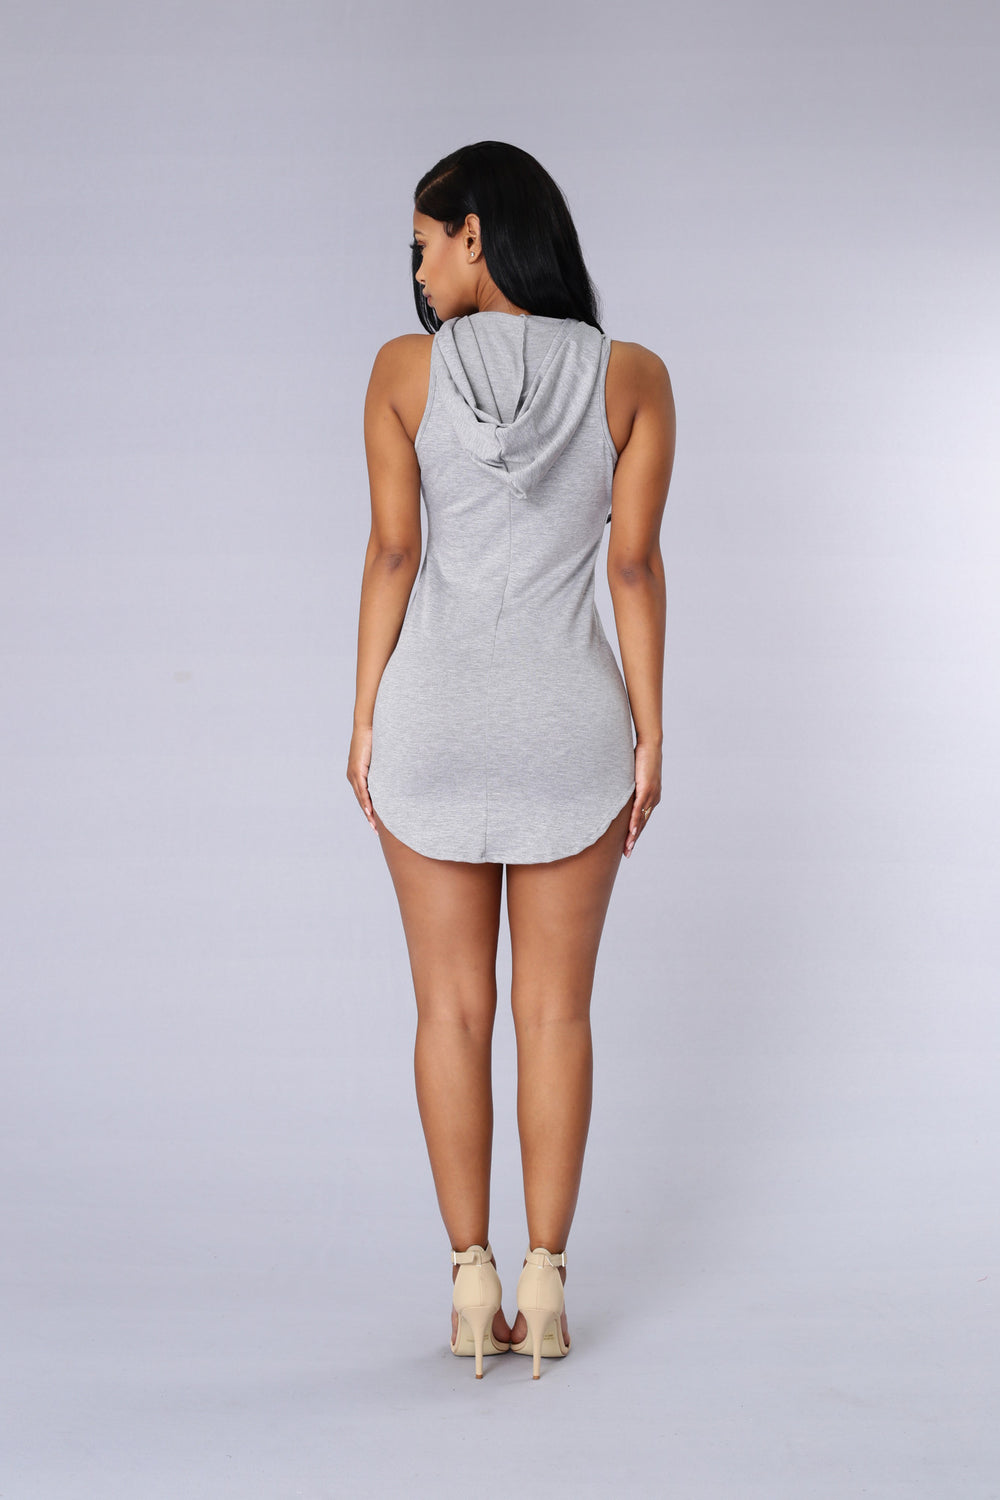 Rascal Dress - Heather Grey